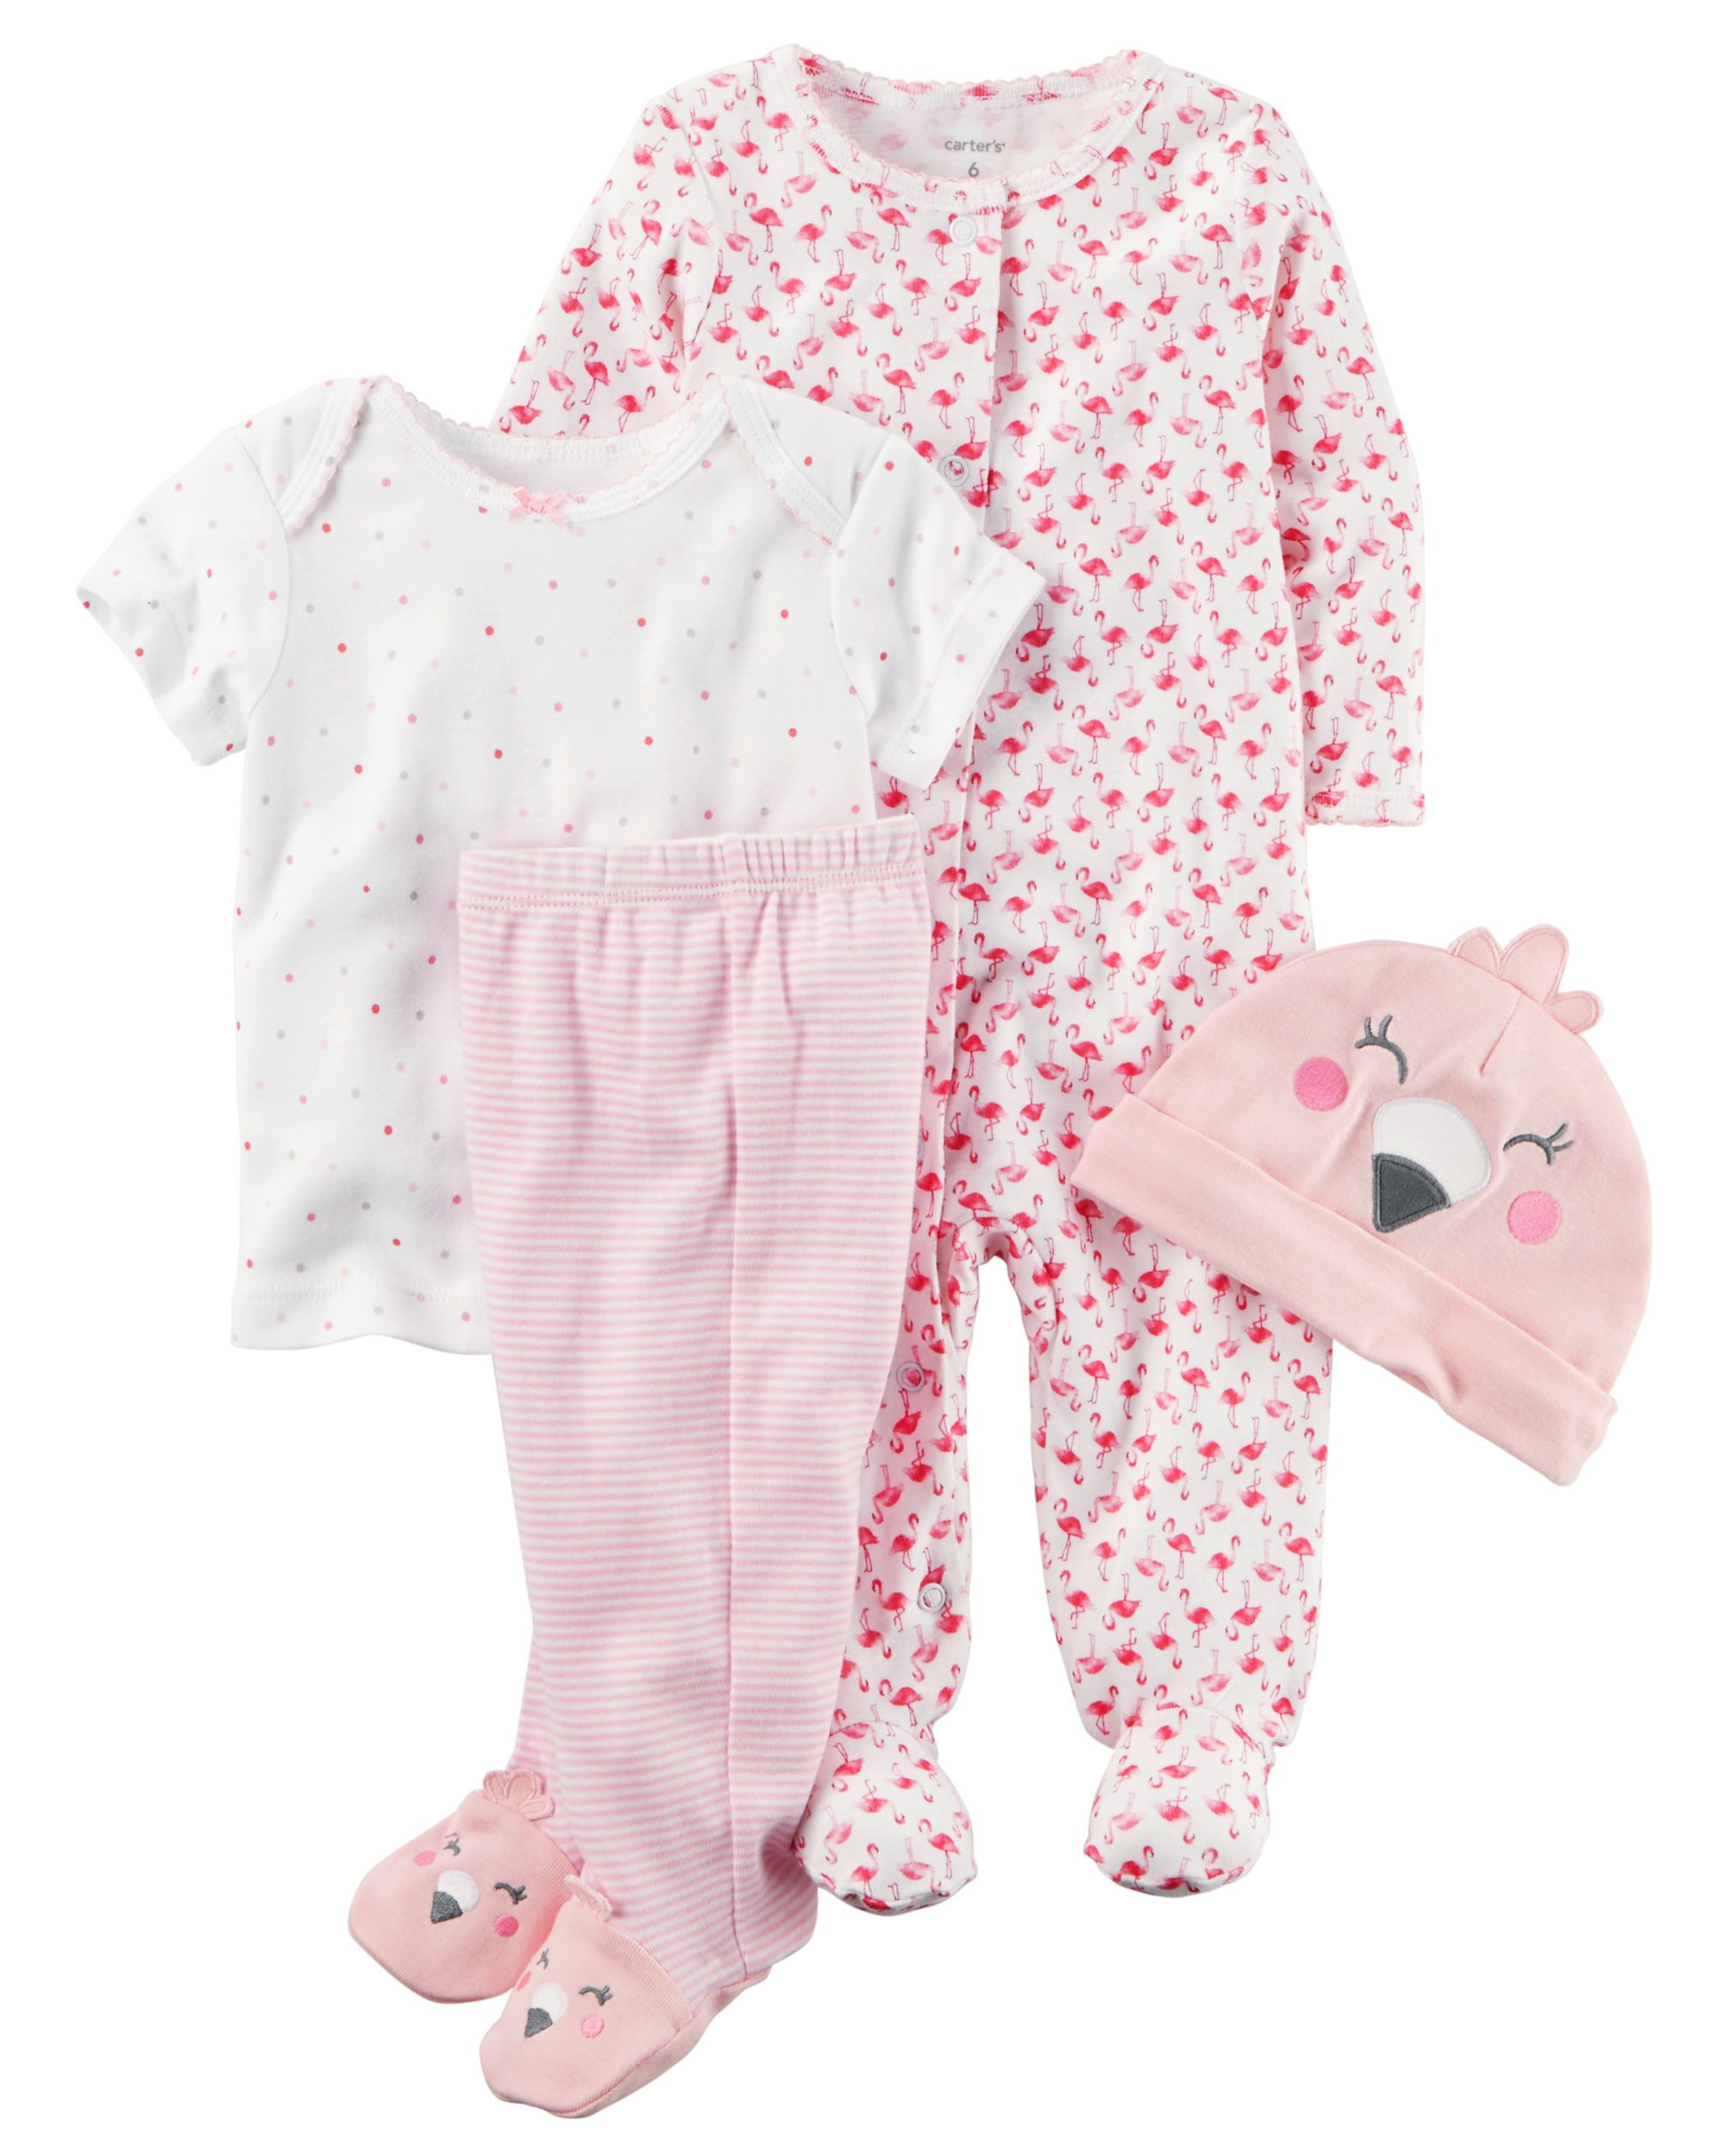 acd3c110c Baby Girl 4-Piece Babysoft Take-Me-Home Set from Carters.com. Shop clothing  & accessories from a trusted name in kids, toddlers, and baby clothes.